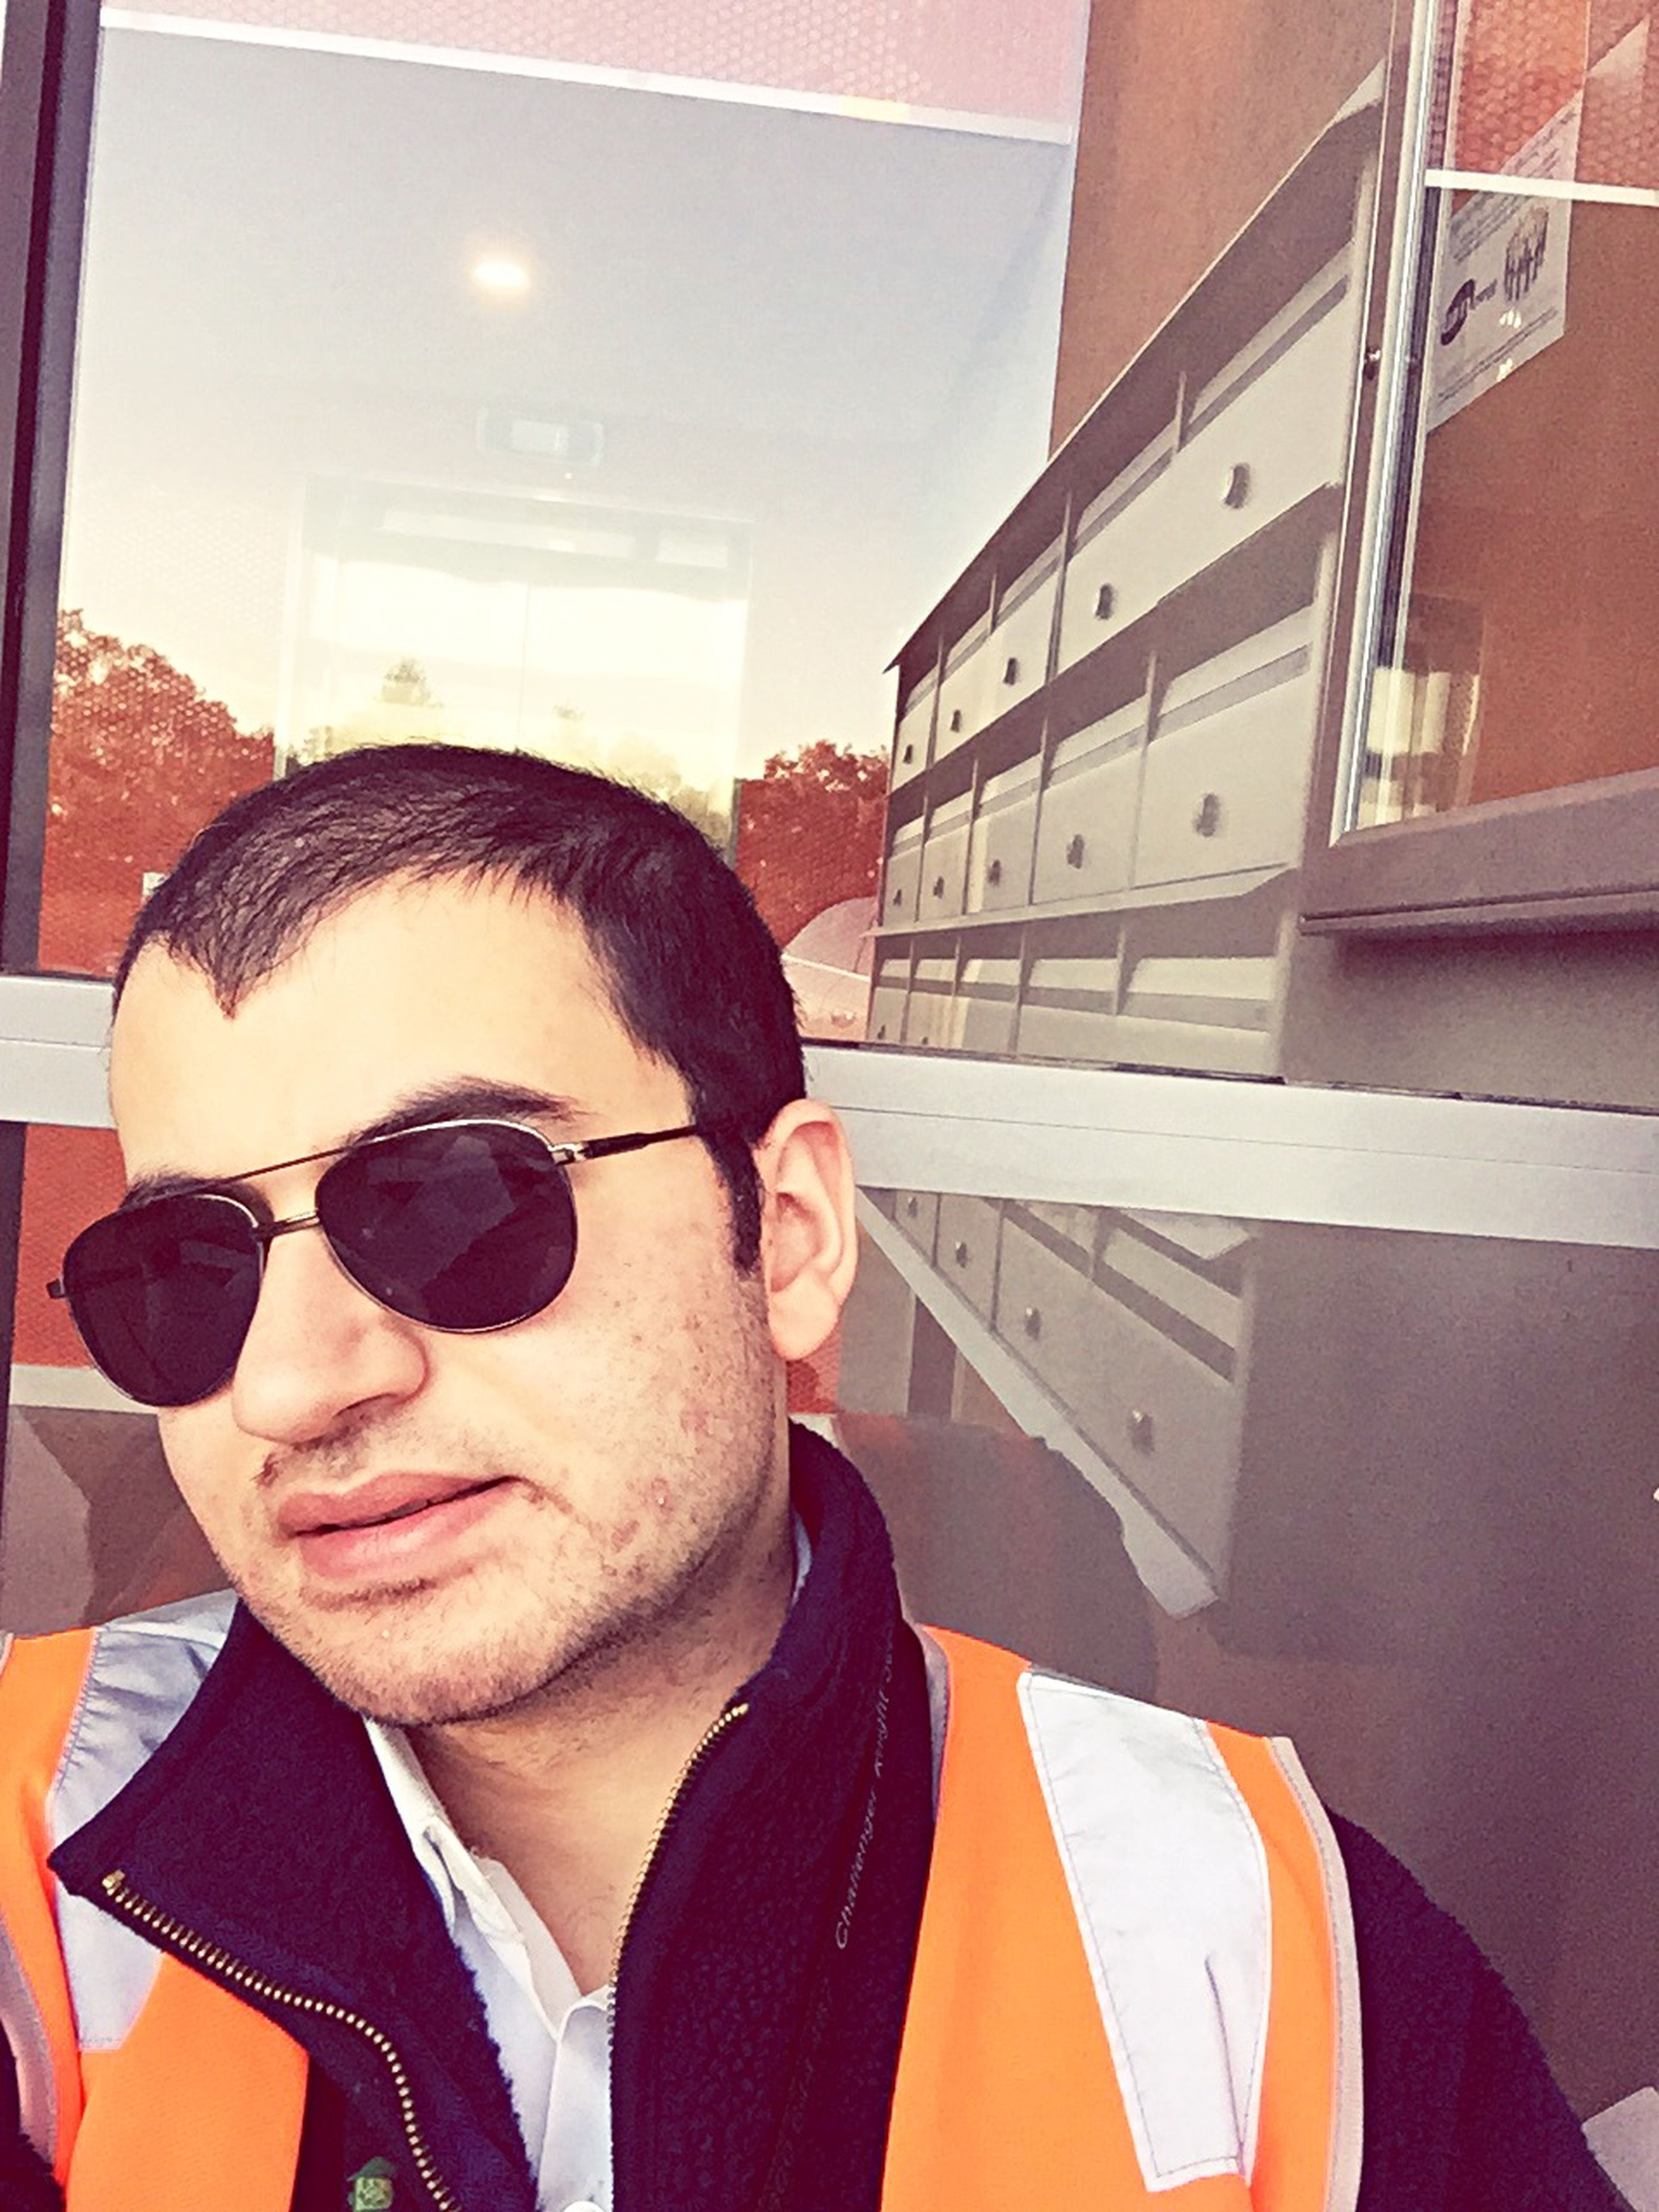 young adult, looking at camera, portrait, person, sunglasses, lifestyles, young men, headshot, front view, leisure activity, smiling, architecture, casual clothing, mid adult, mid adult men, building exterior, built structure